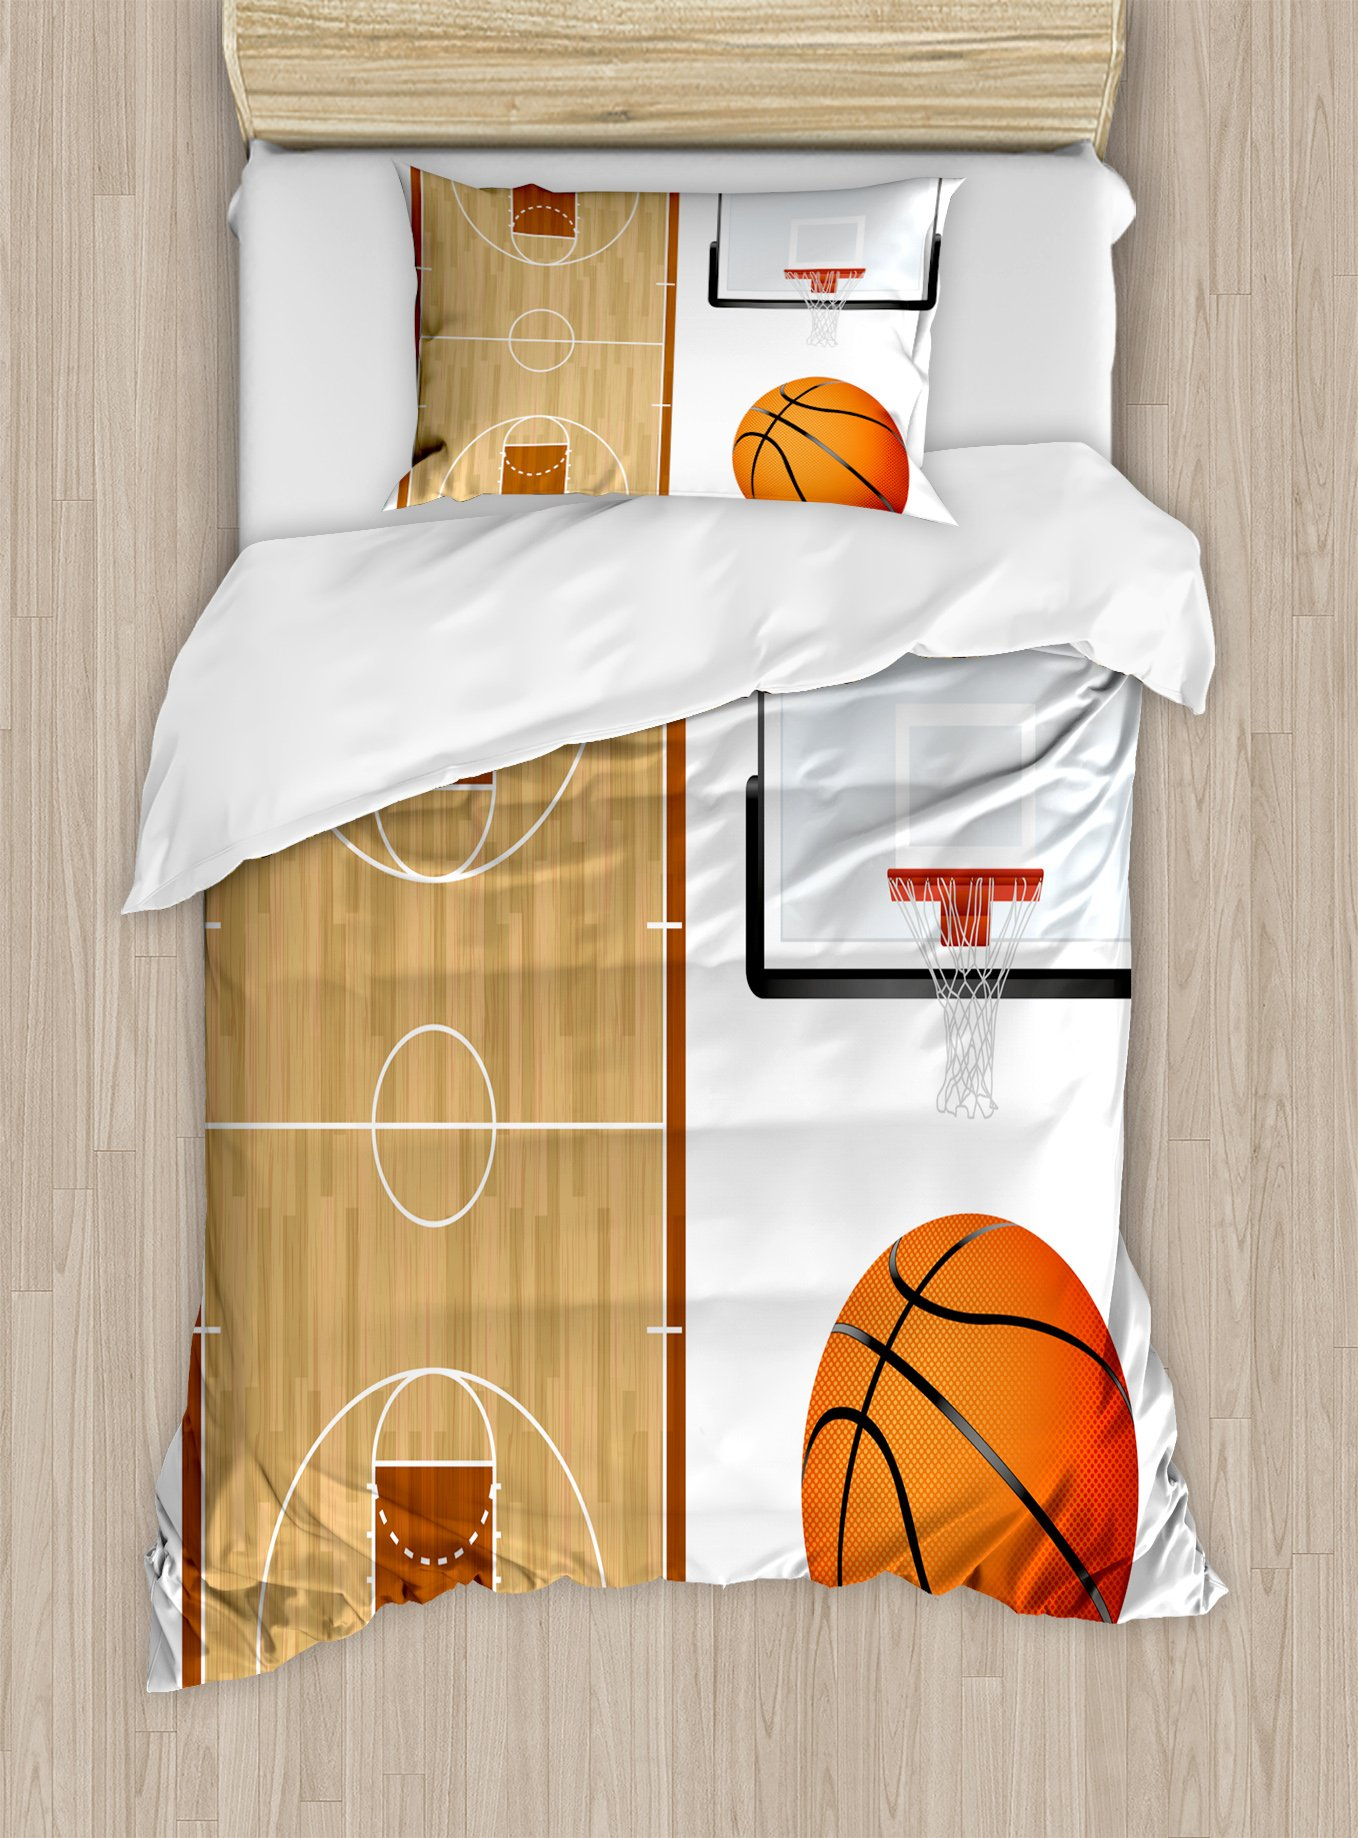 Lunarable Boy's Room Duvet Cover Set Twin Size, Basketball Court Backboard Illustration Realistic Sports Themed, Decorative 2 Piece Bedding Set with 1 Pillow Sham, Pale Brown Orange Black